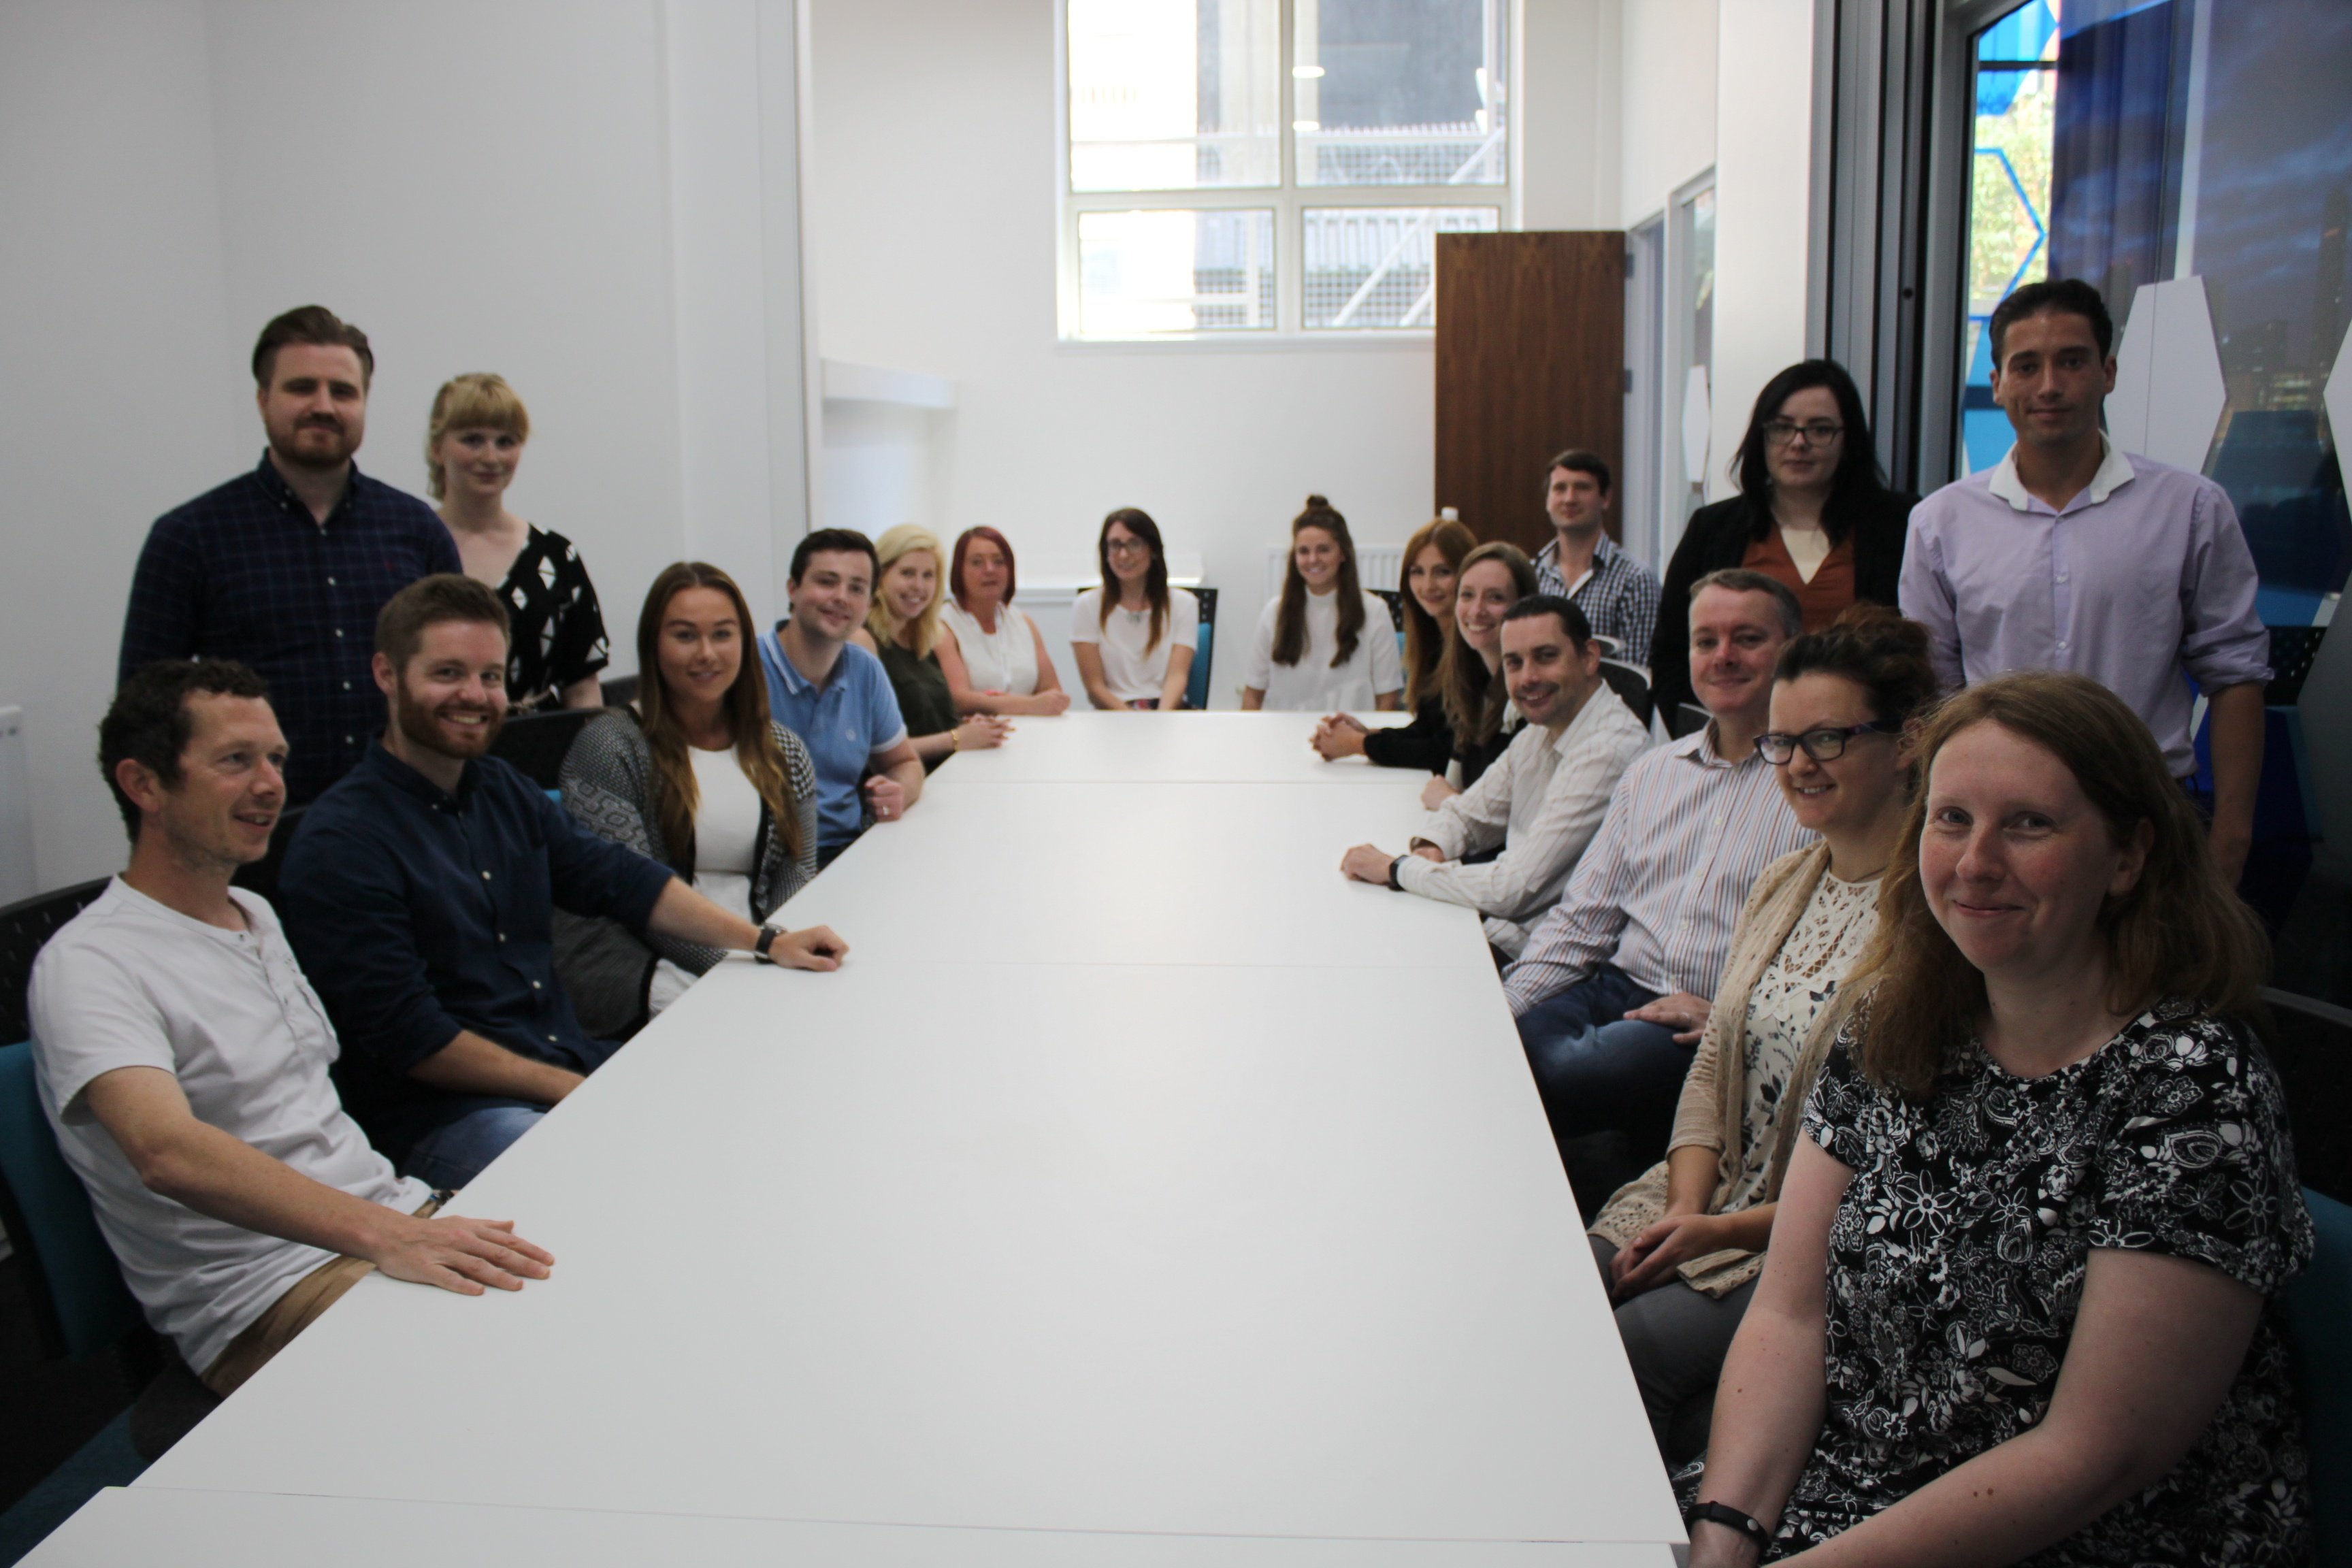 The team at Hit Search